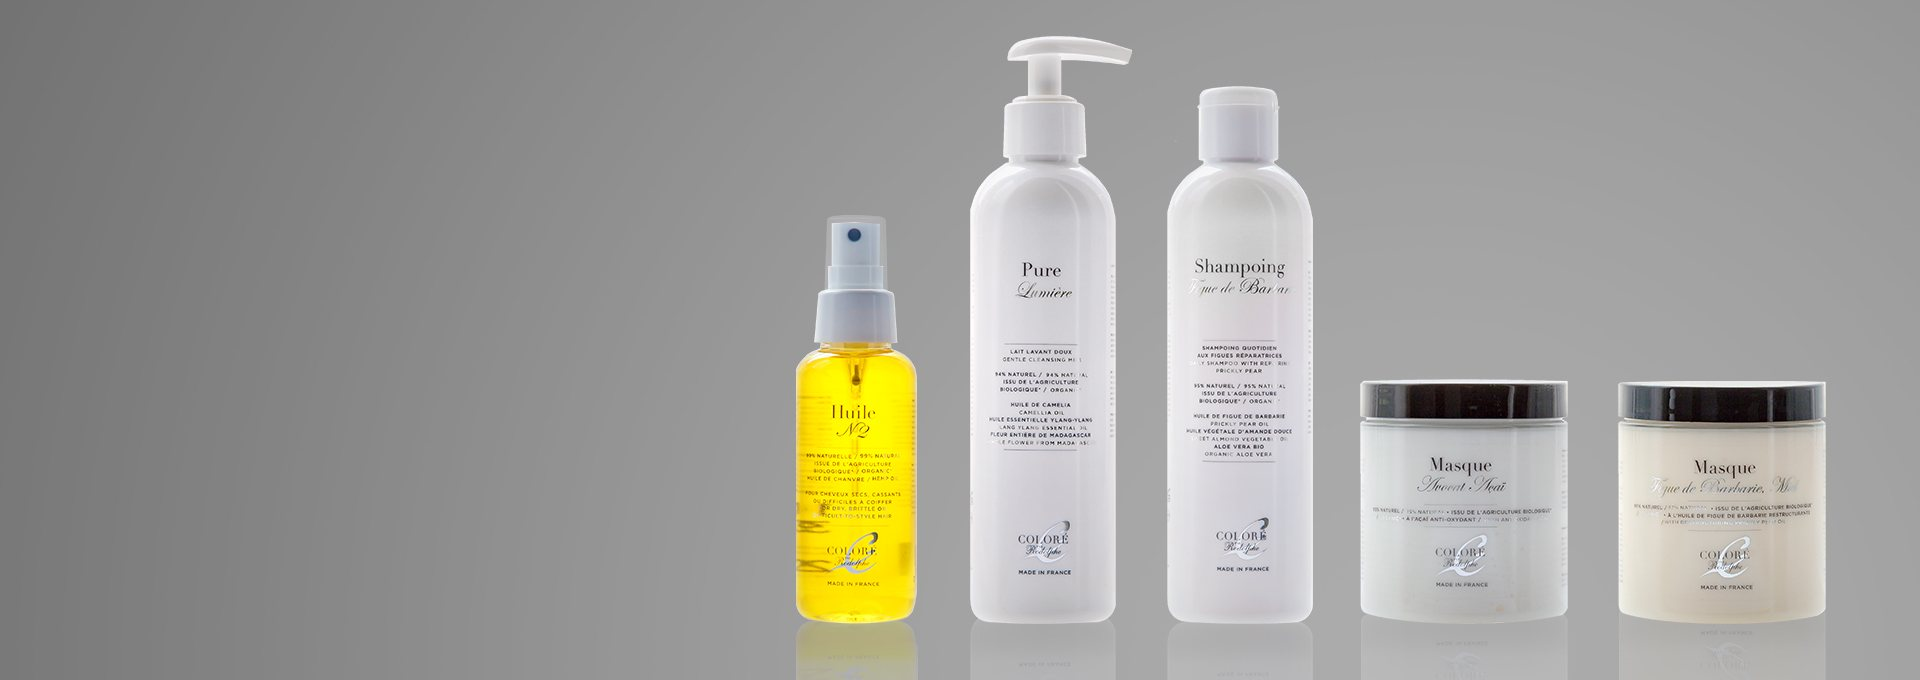 Nurse chemically treated dry or damaged hair